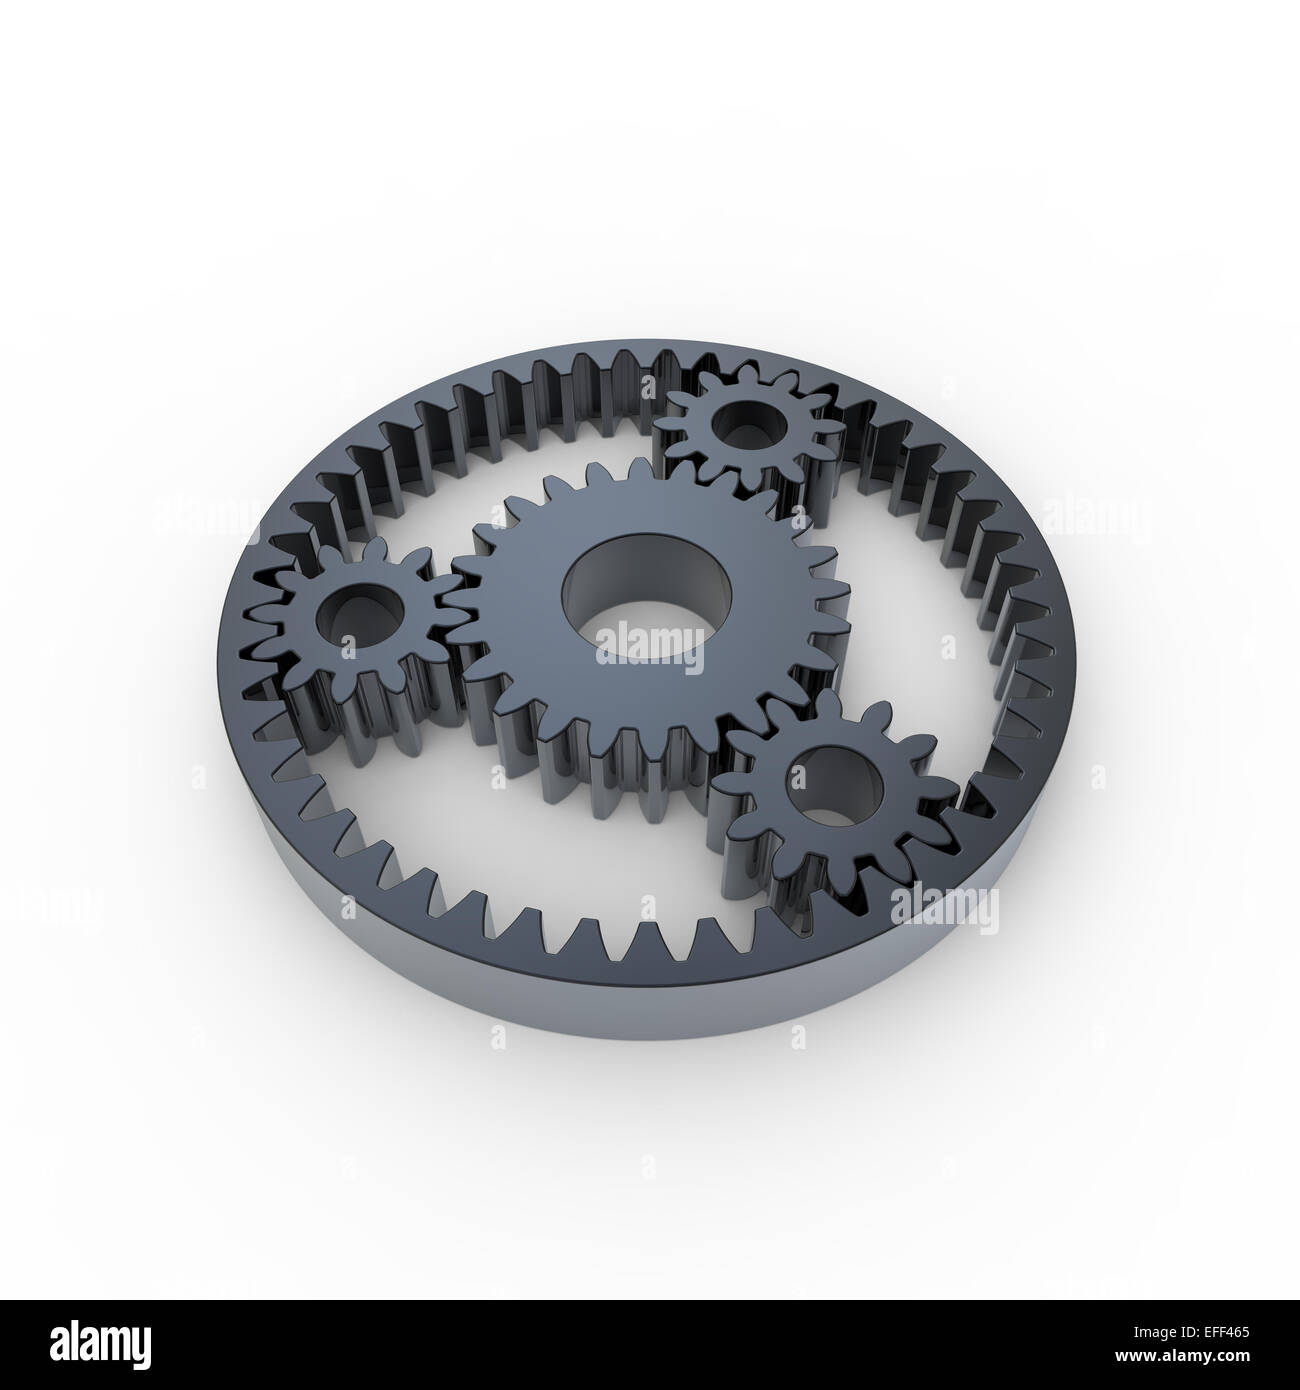 black anodized steel planetary gears on a white background - Stock Image